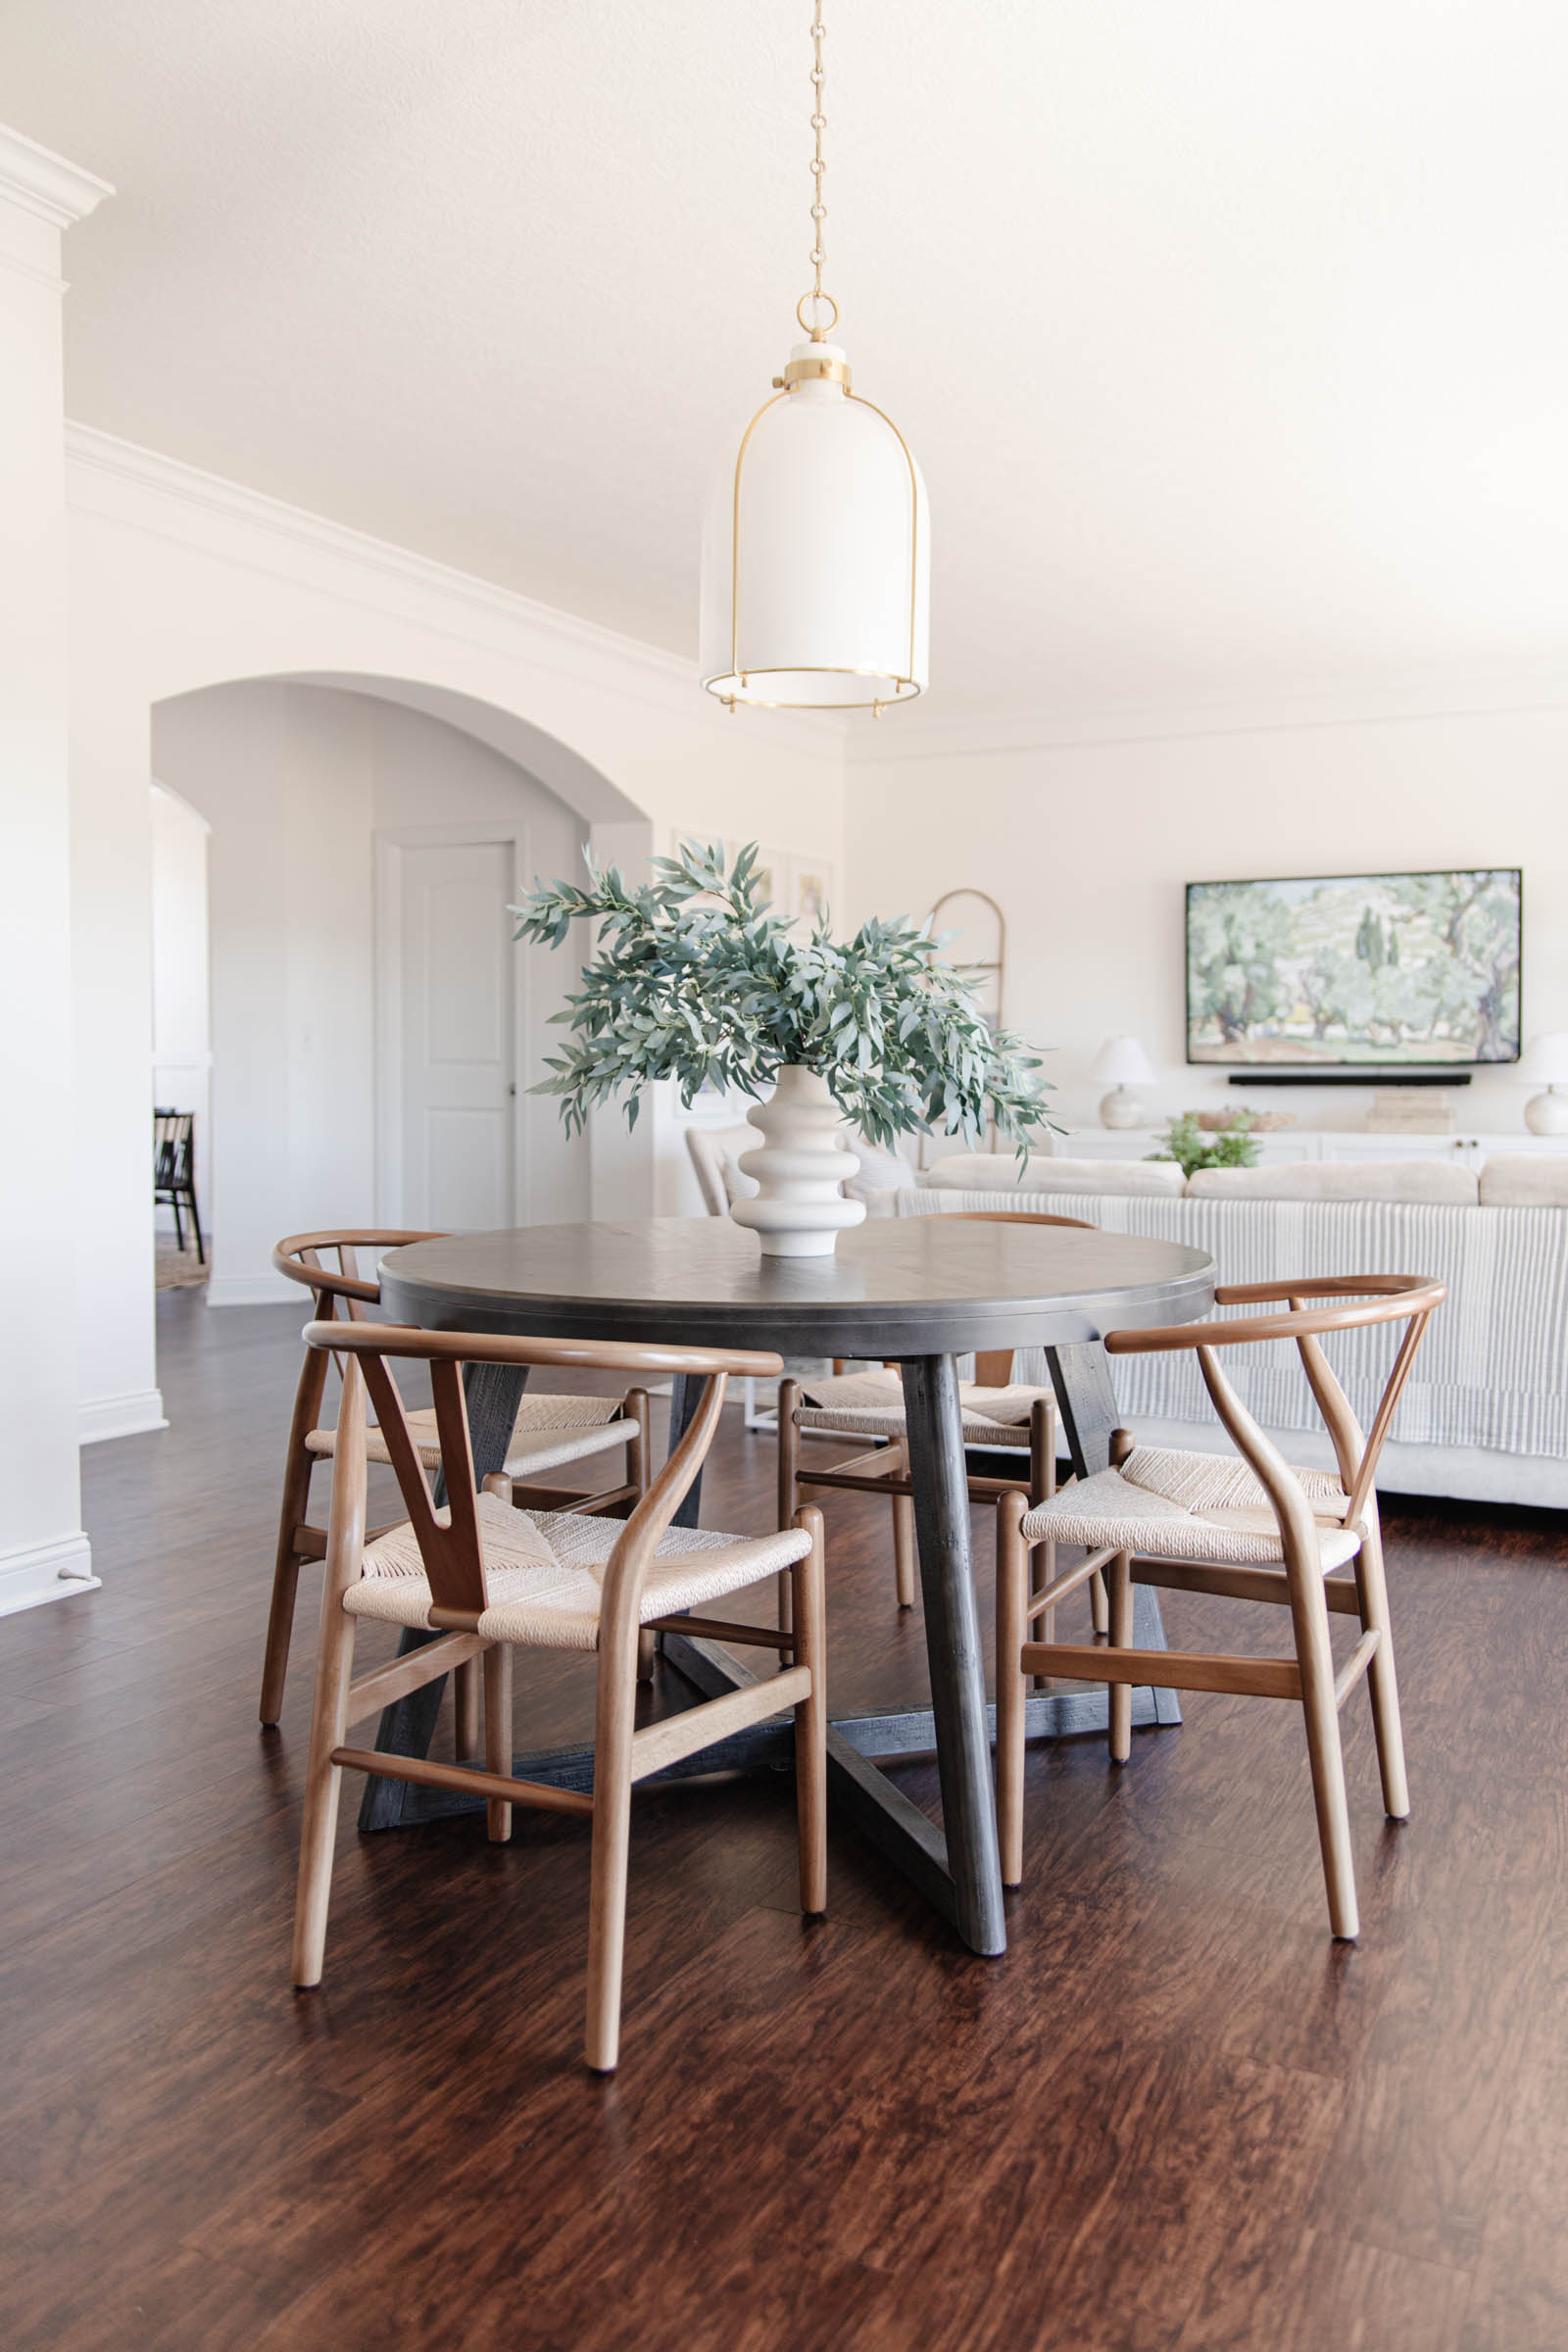 Breakfast Table Update with Overstock | round breakfast table, wishbone chairs, brass pendant light, faux greenery